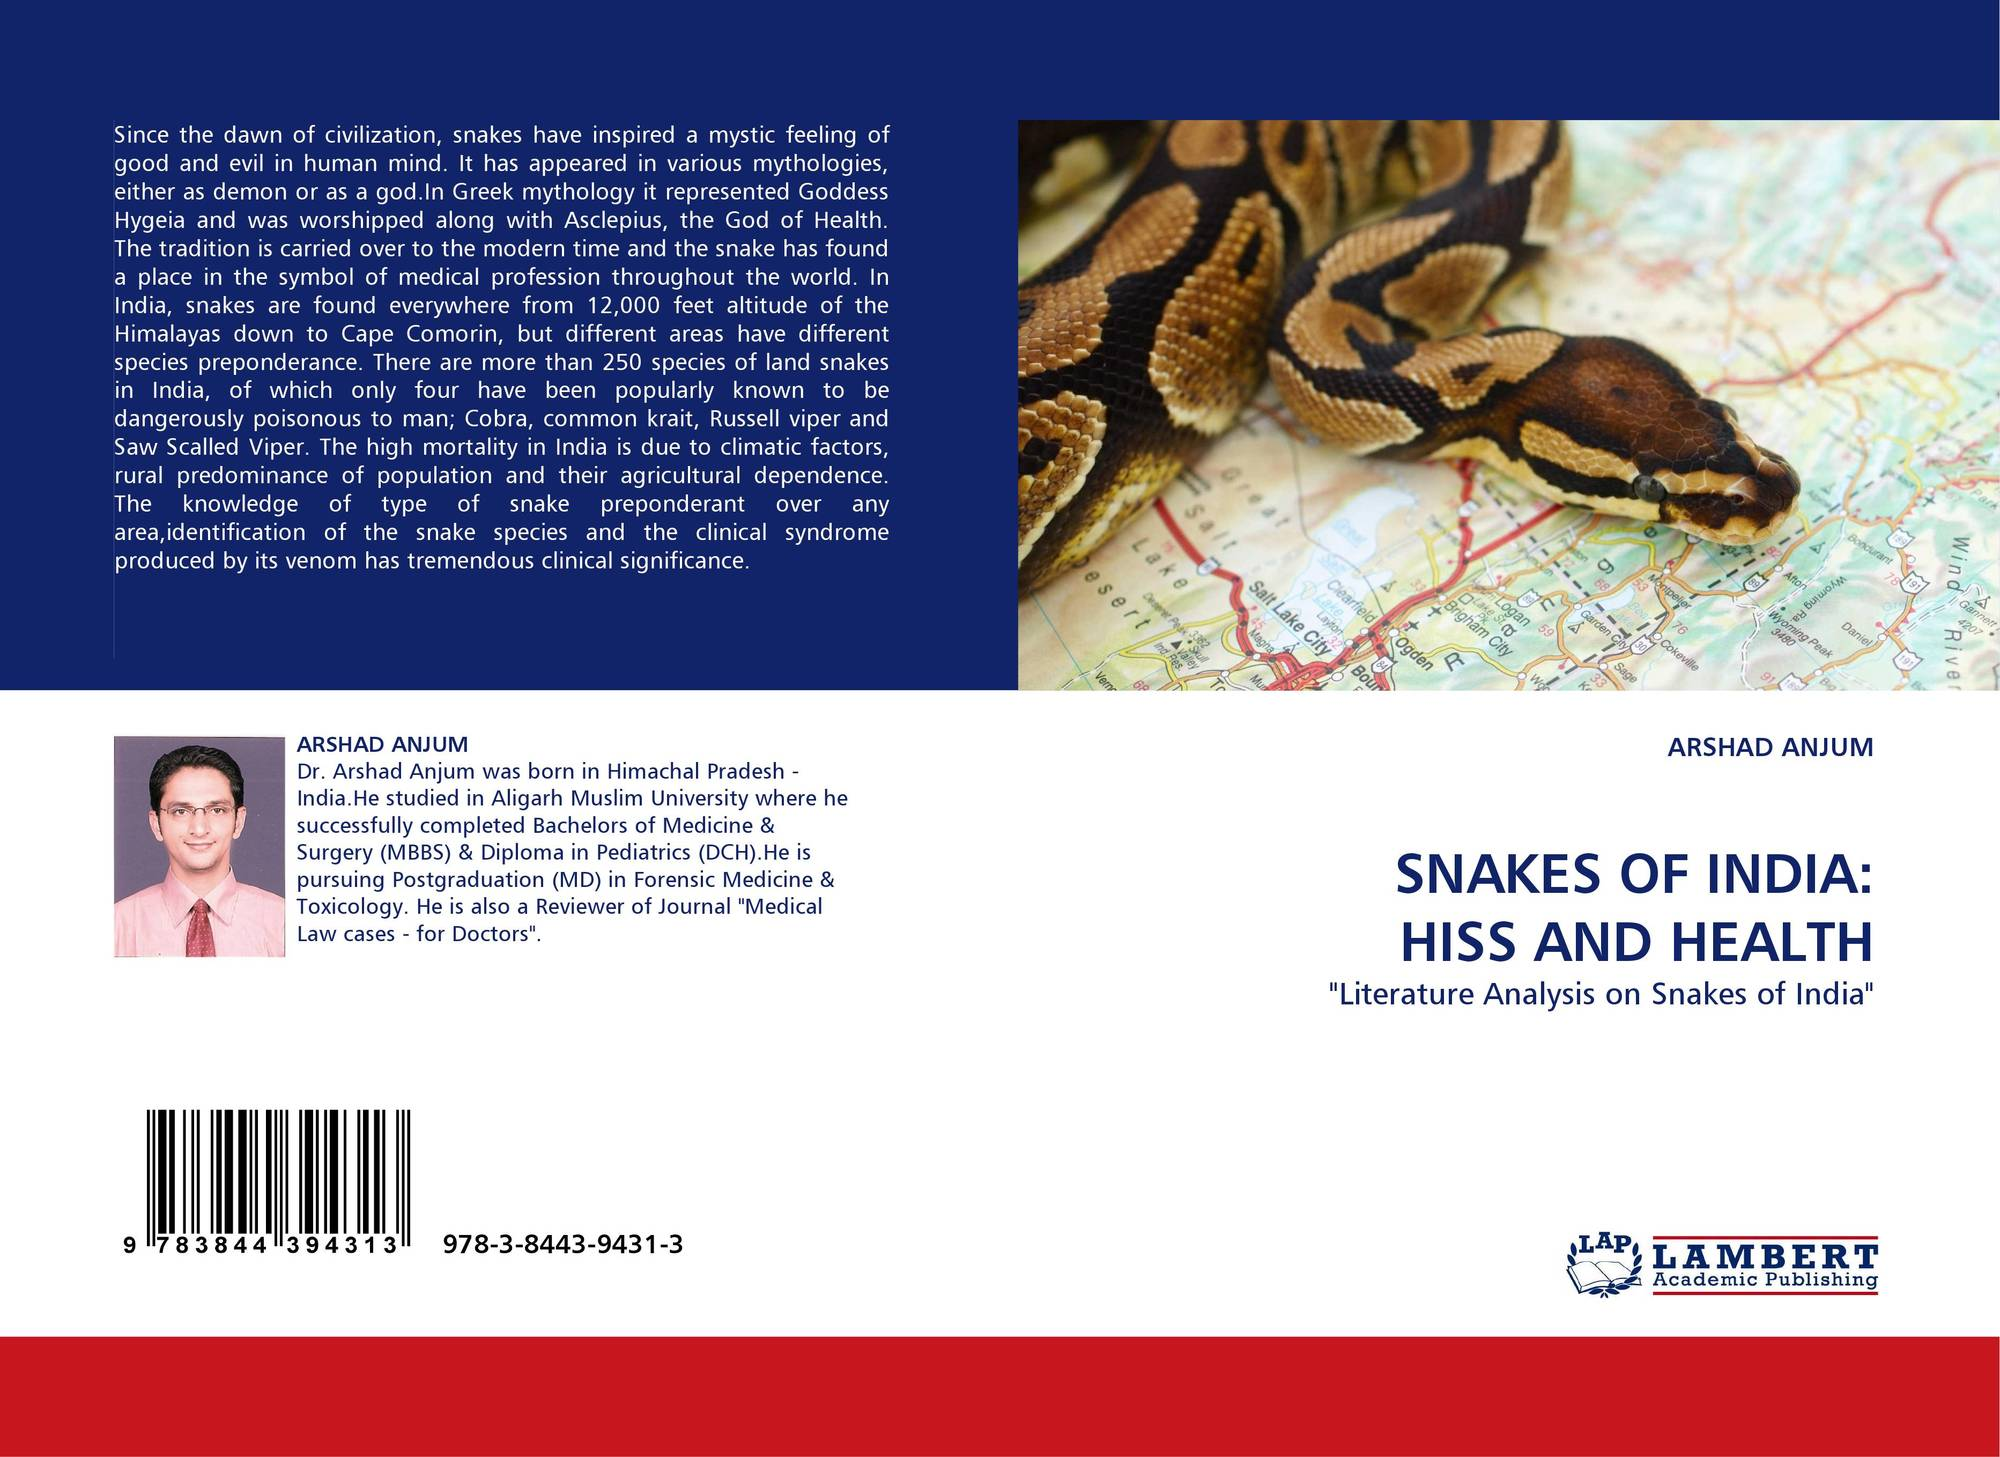 SNAKES OF INDIA: HISS AND HEALTH, 978-3-8443-9431-3